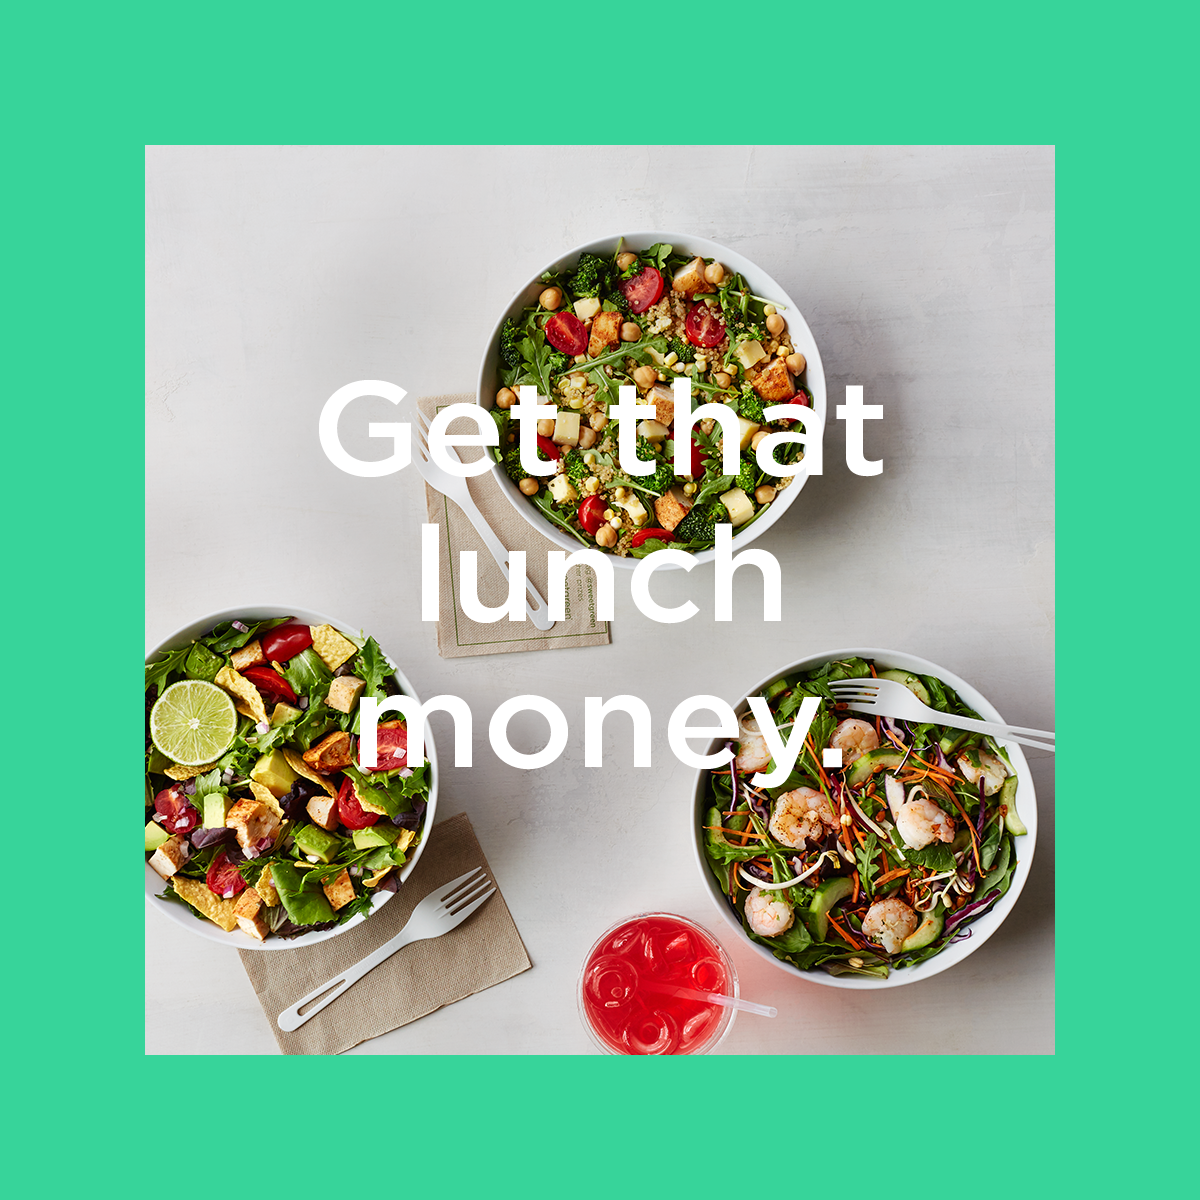 sweetgreen: Get that lunch money by referring friends